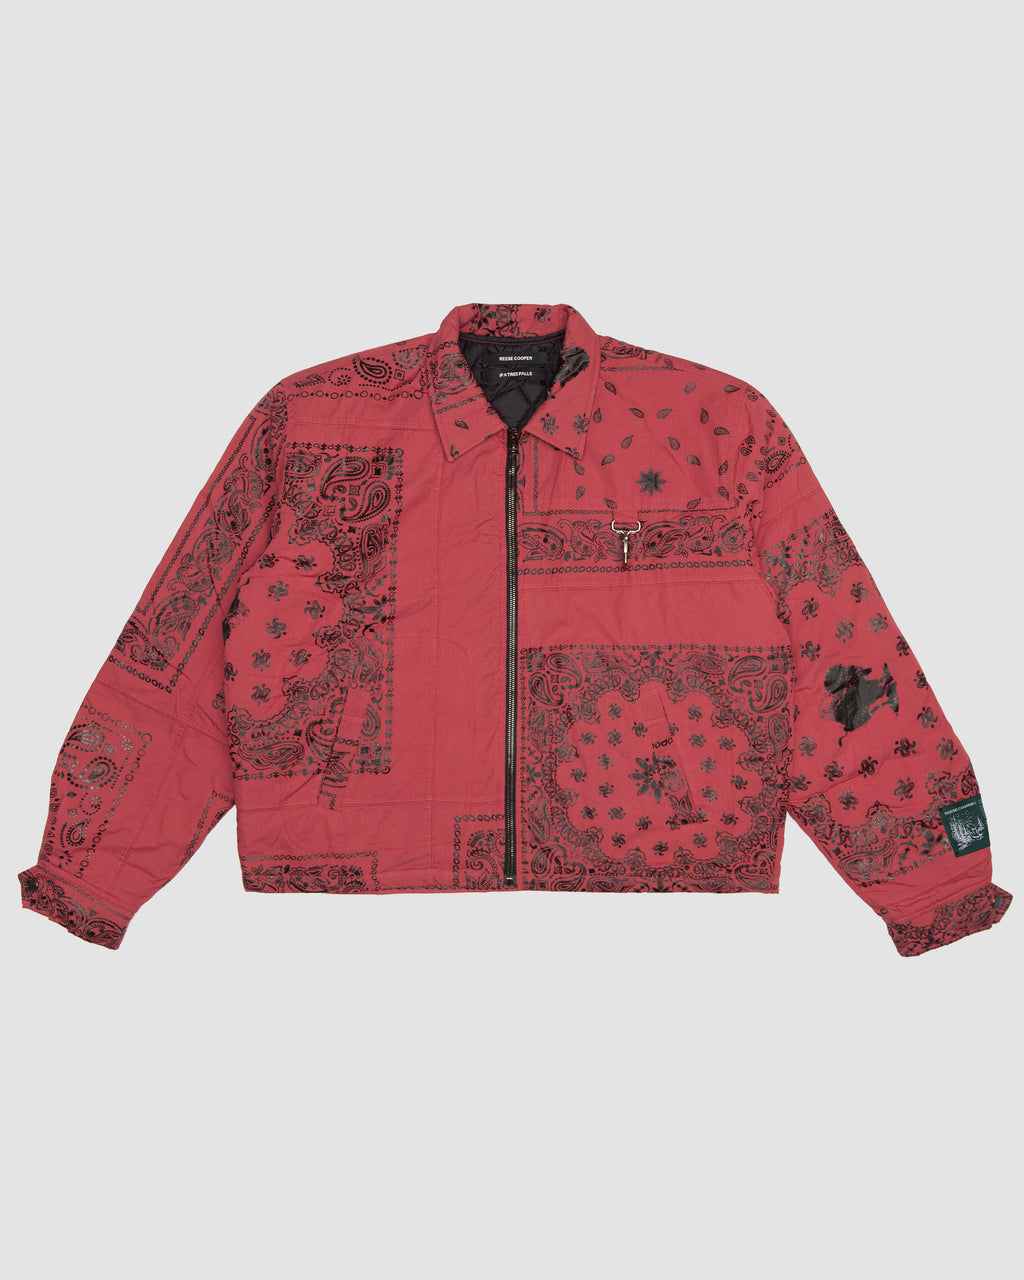 Bandana Patchwork Jacket in Red